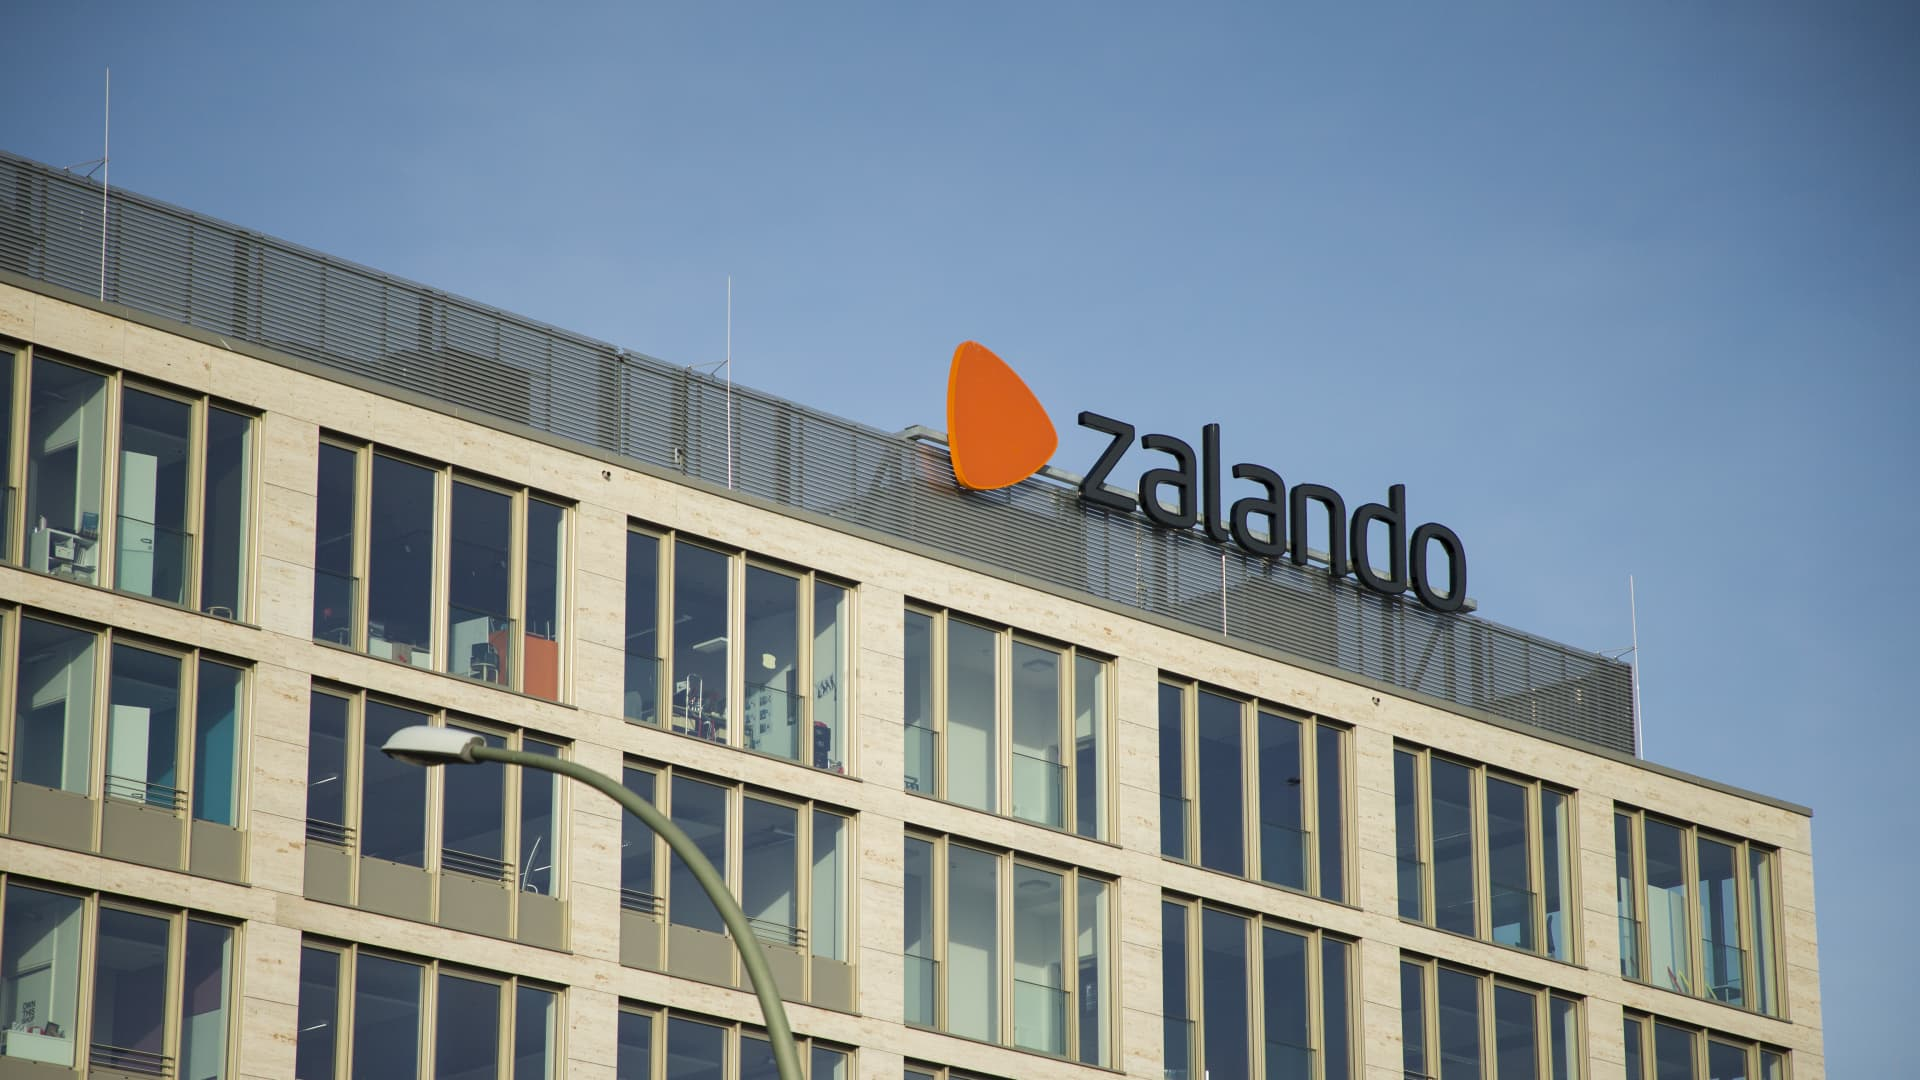 The Zalando logo is seen on a building in the district of Friedrichshain-Kreuzberg in Berlin, Germany